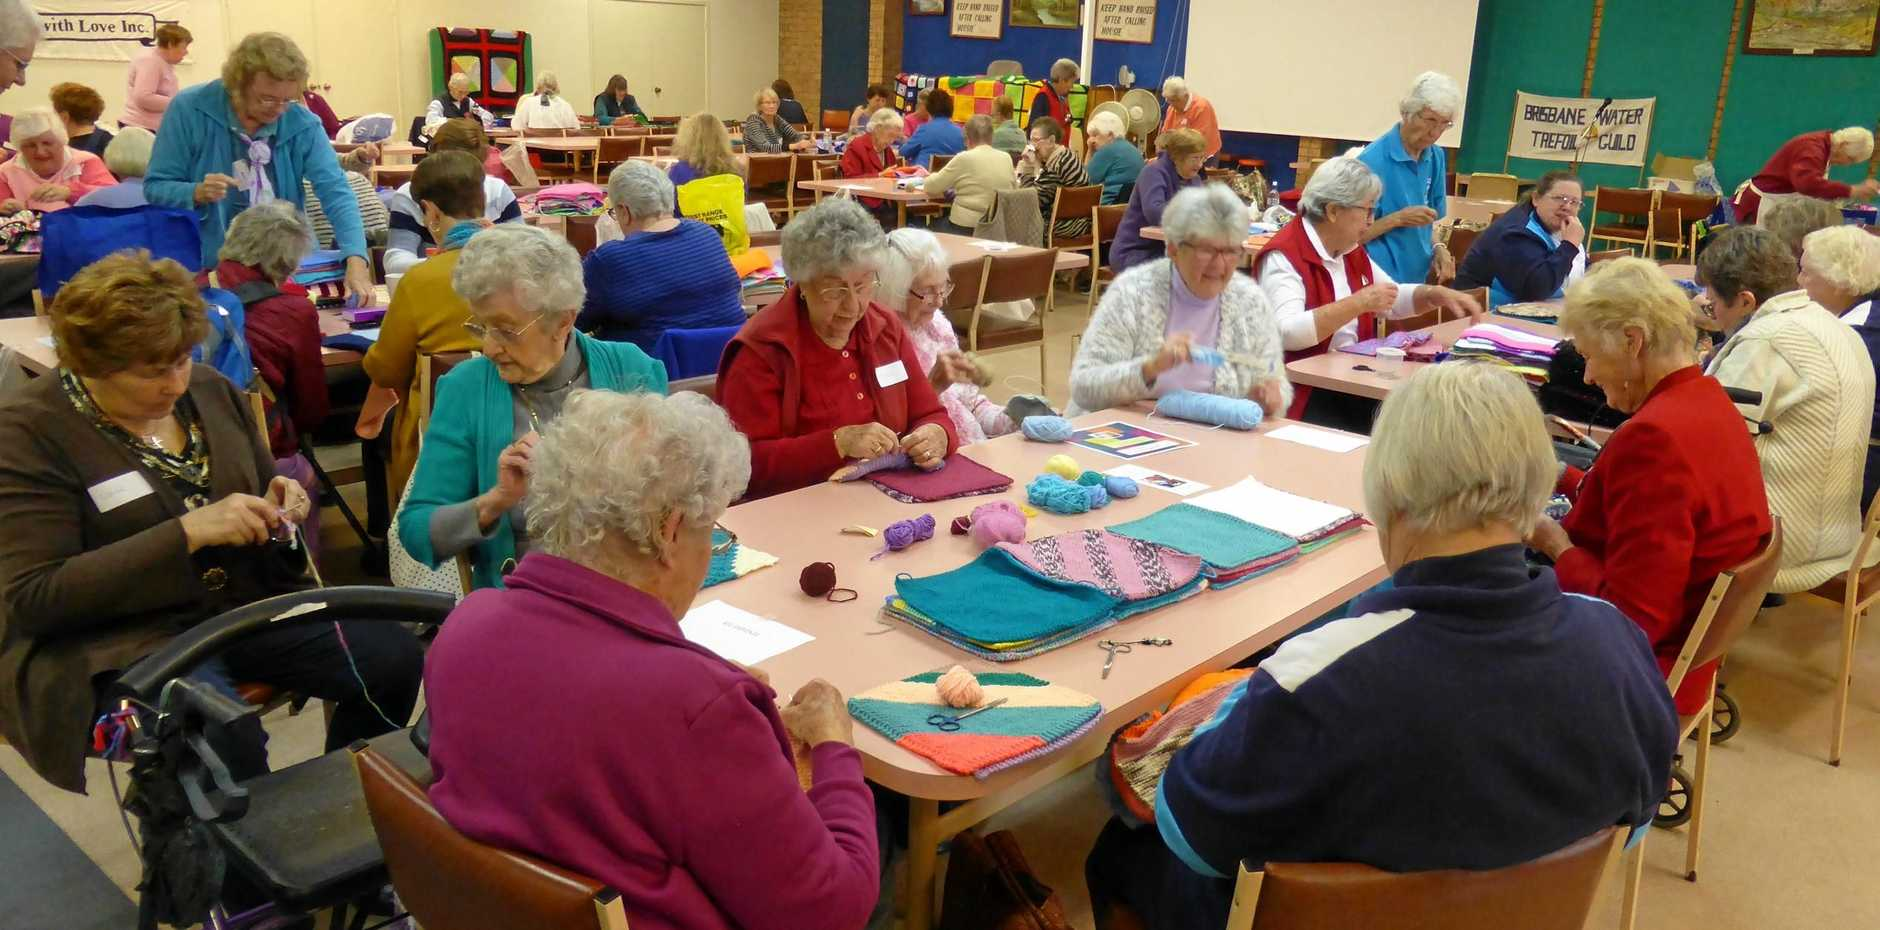 ALL SEWN UP: Participants at a previous Wrap with Love knitting day, sewing together donated squares to make blankets to be donated to those in need.